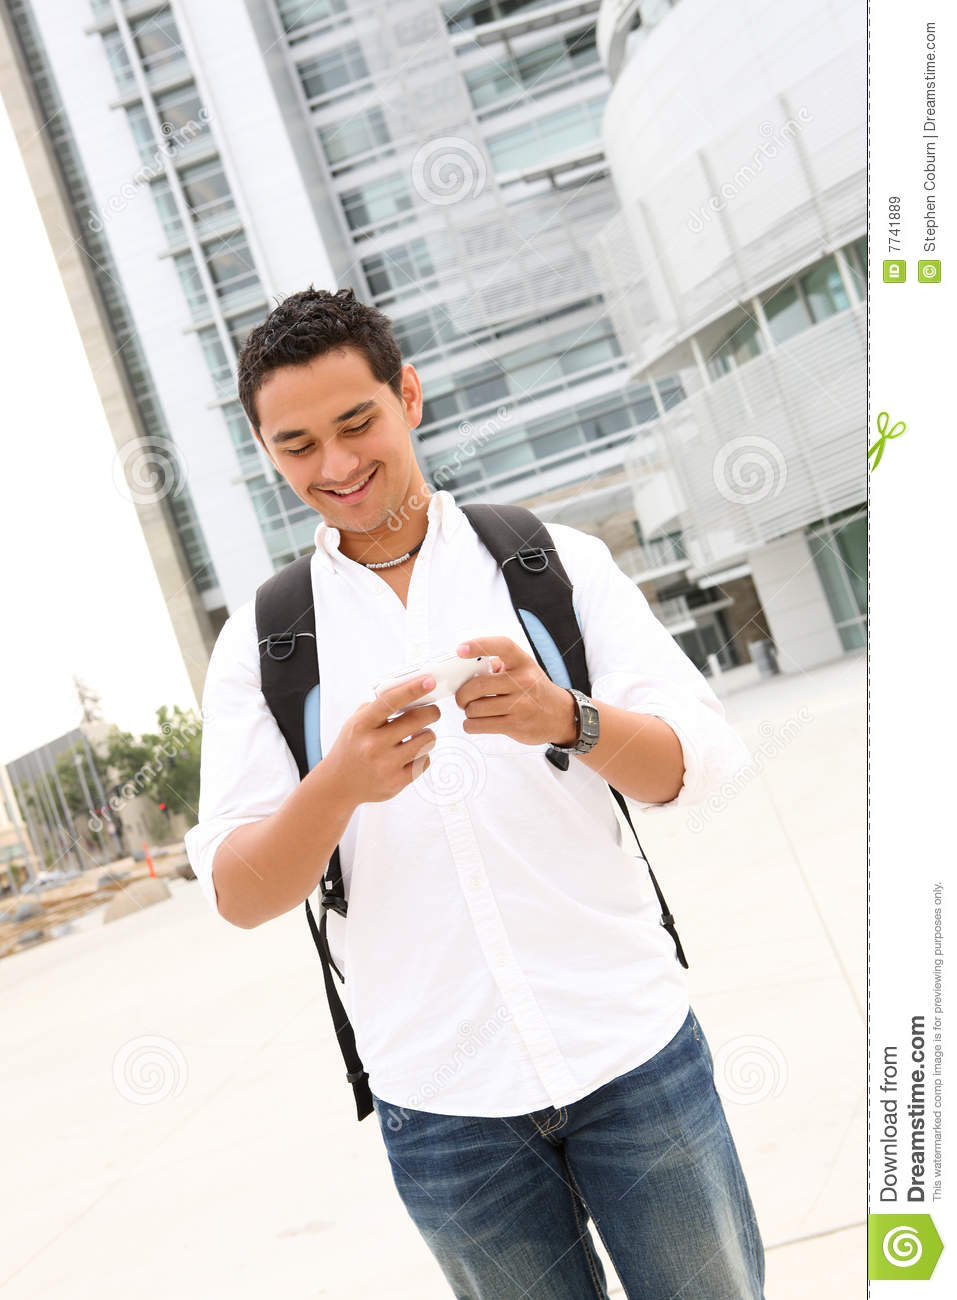 College students and text messaging